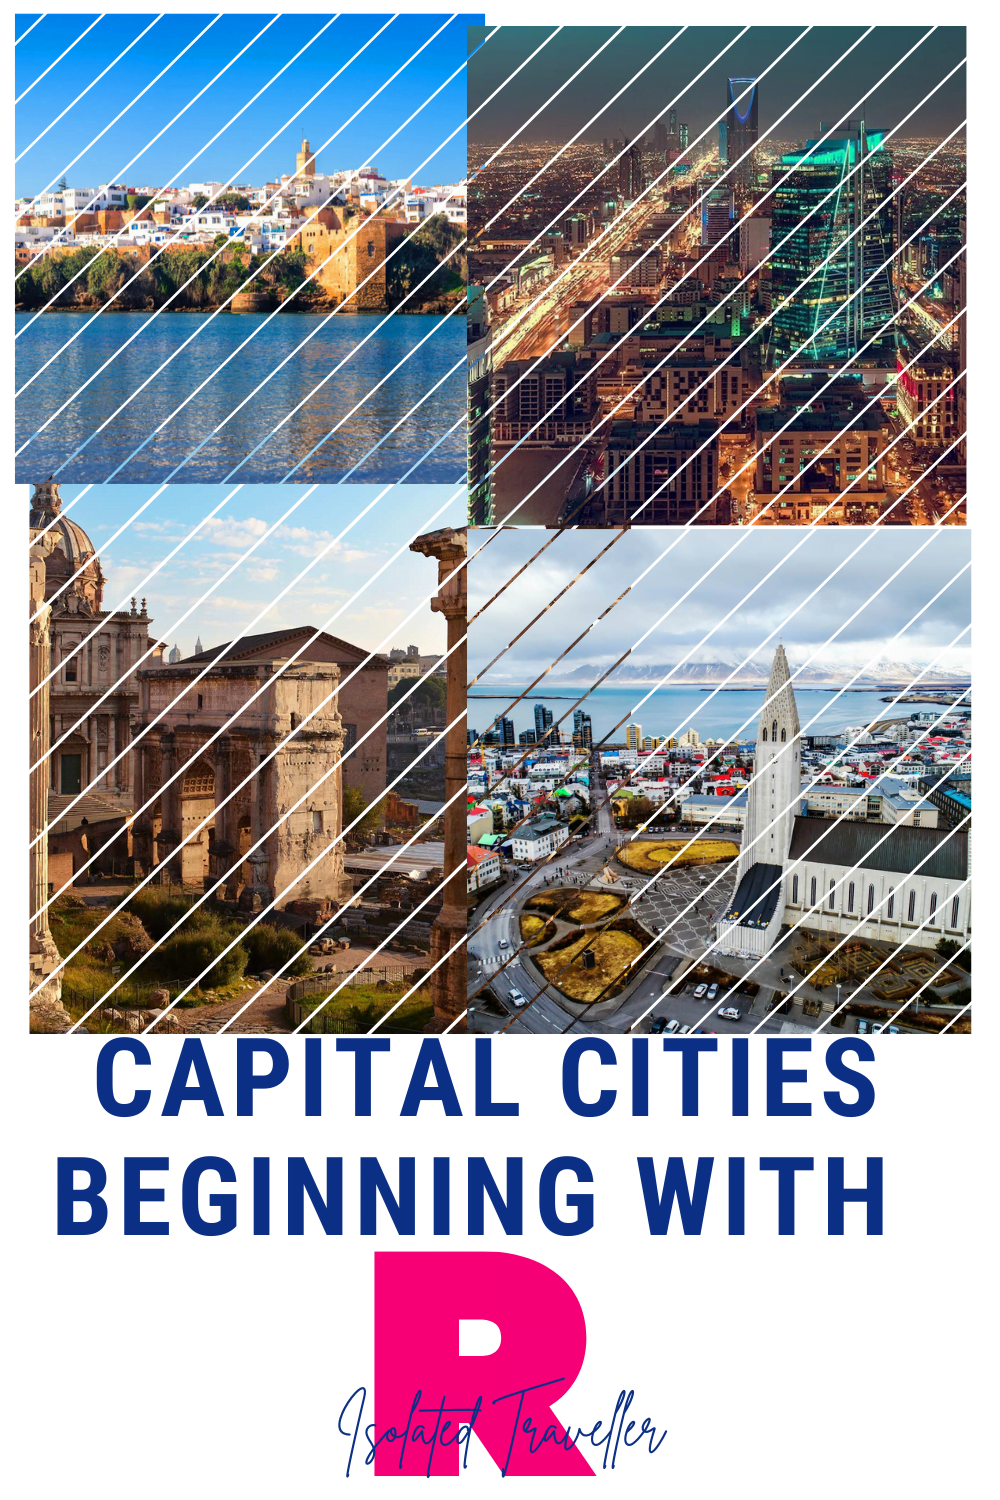 Capital Cities beginning with R